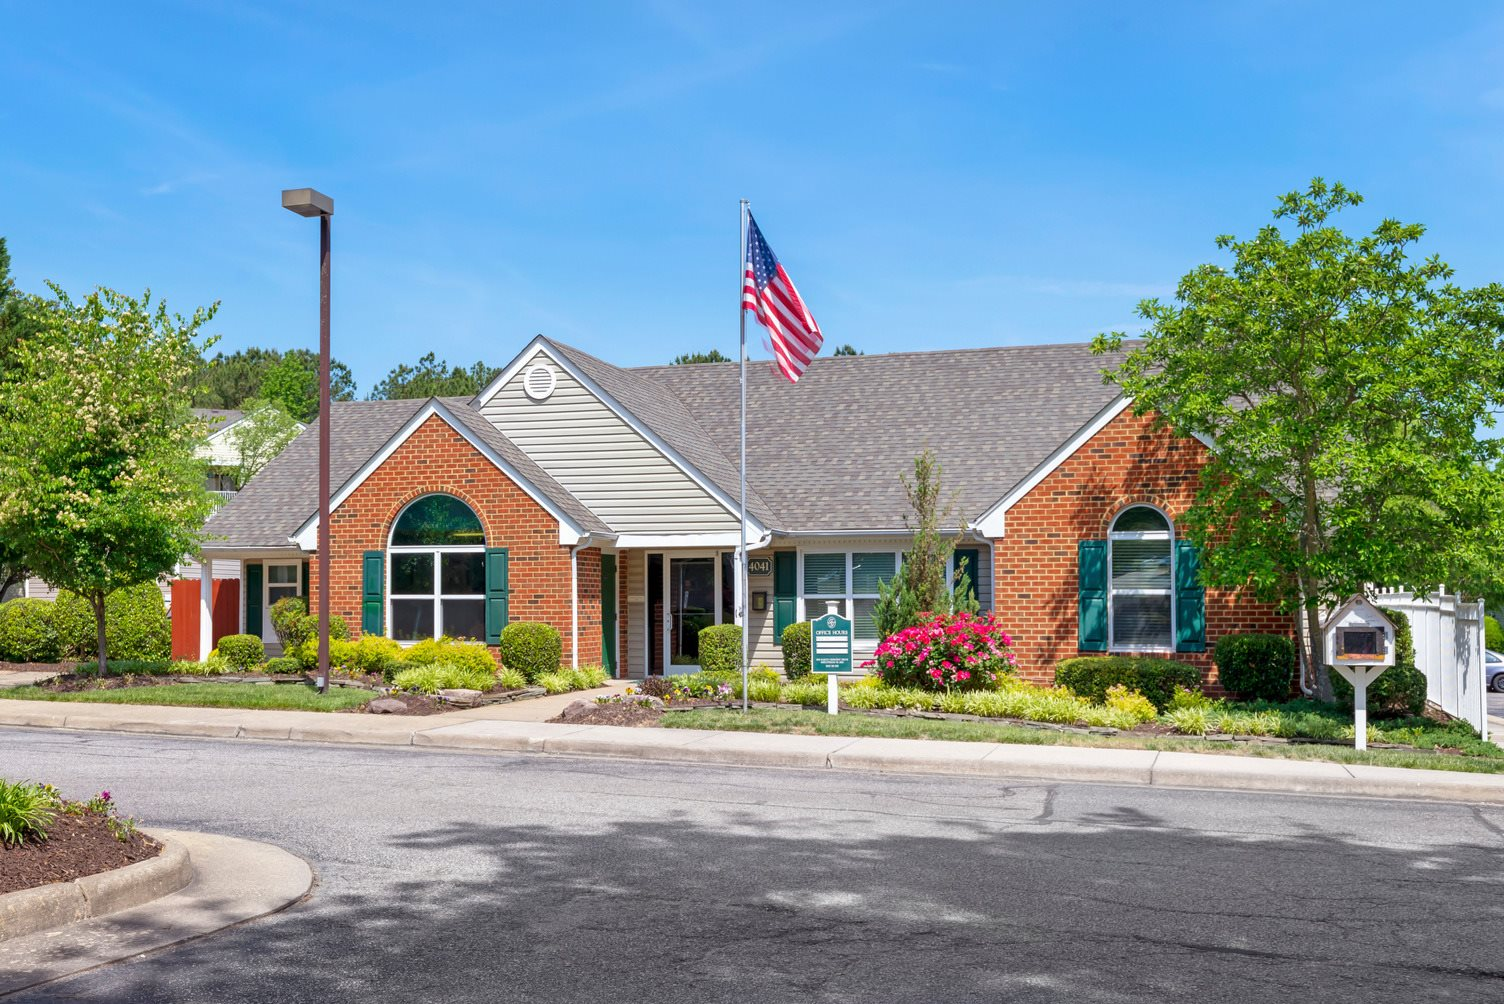 Clubhouse exterior with flag pole, street light and parking lot.